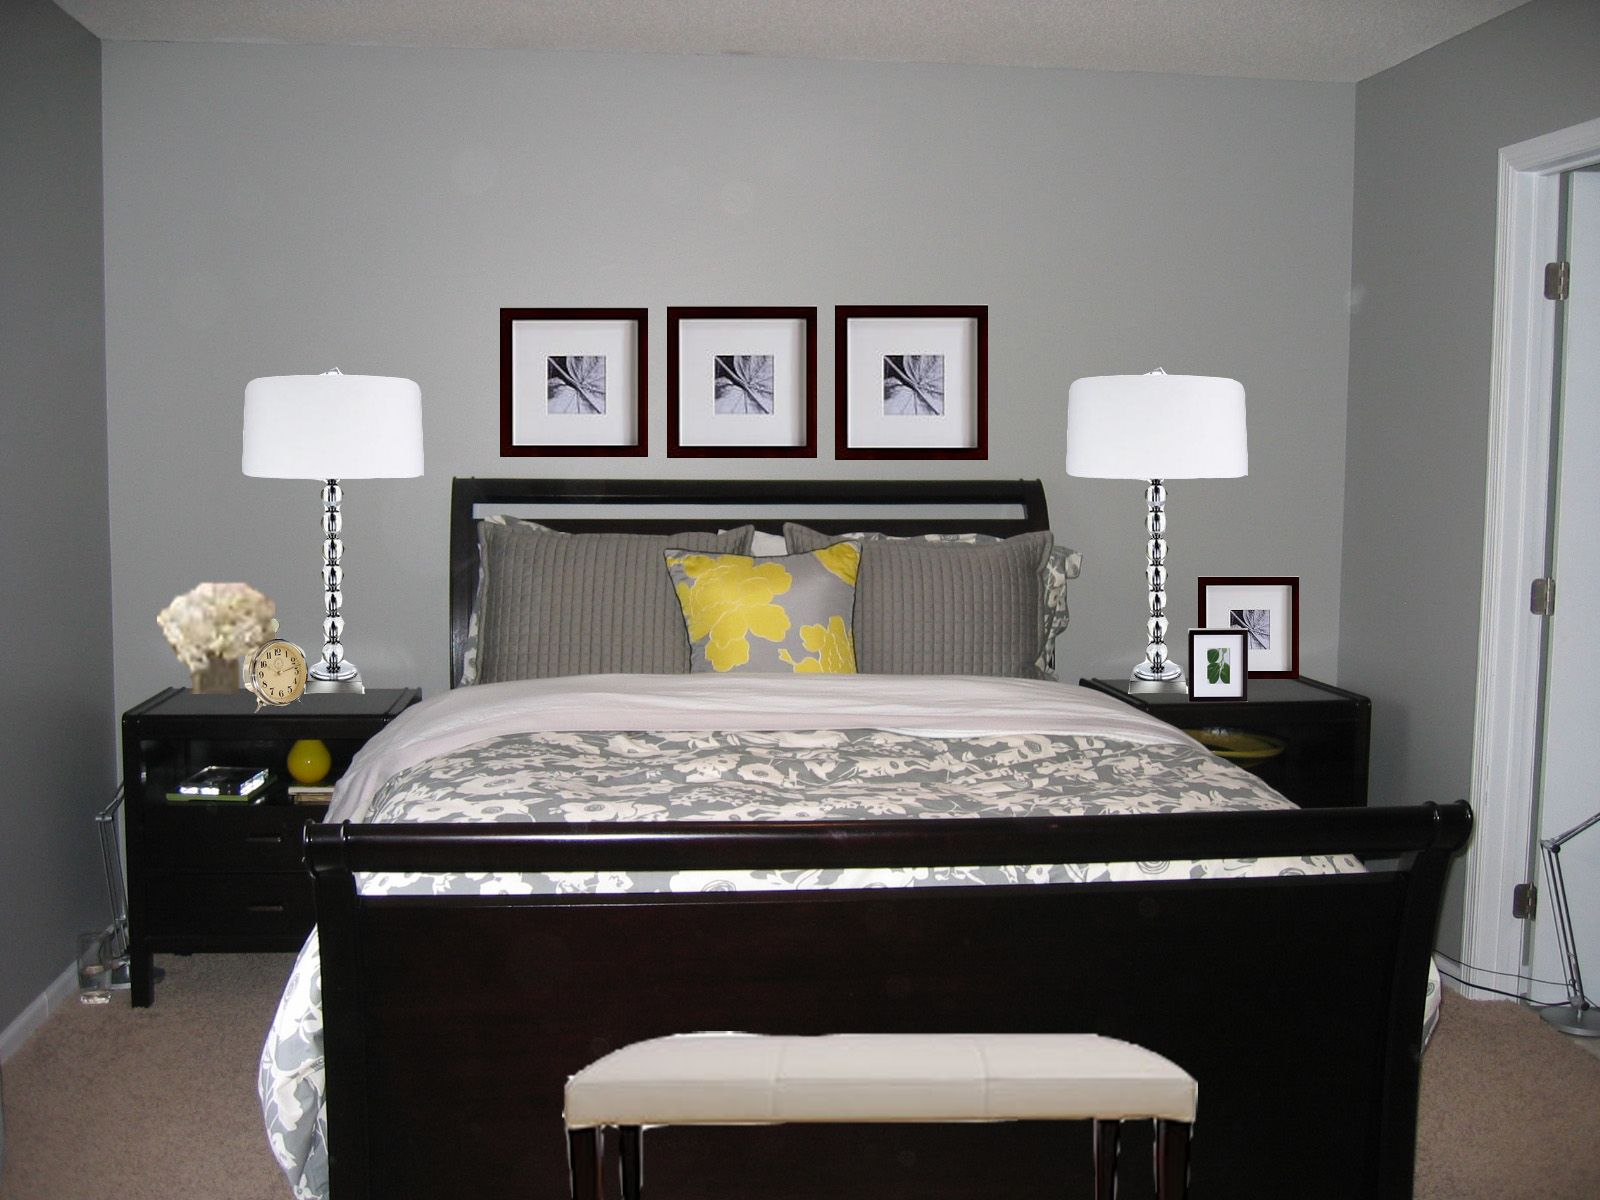 Bedroom color ideas grey - Lovely Master Bedroom Gray Color Ideas On Bedroom Decorating Ideas